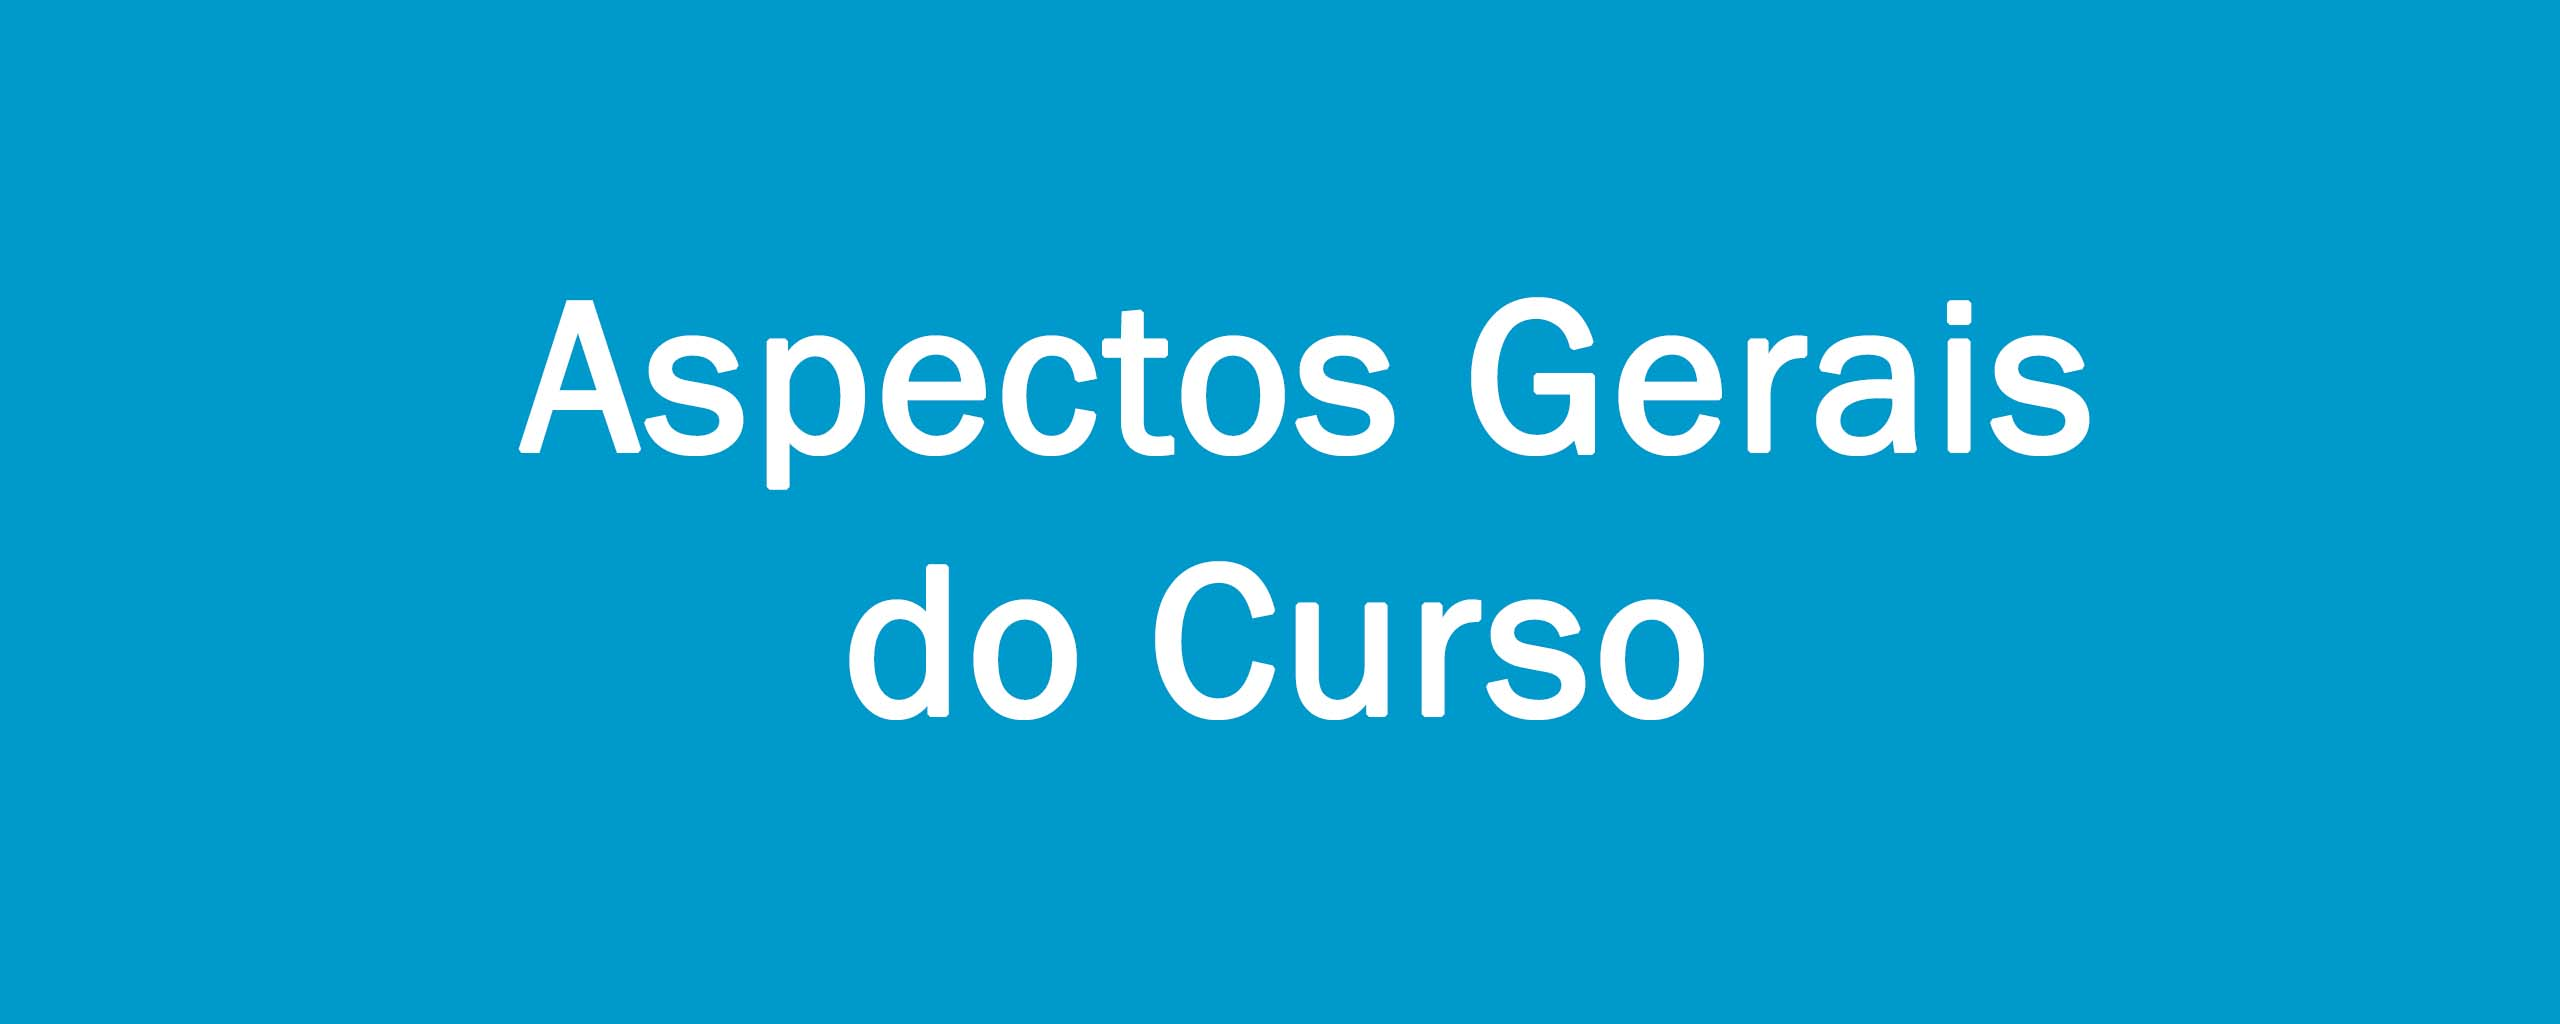 Aspectos Gerais do Curso